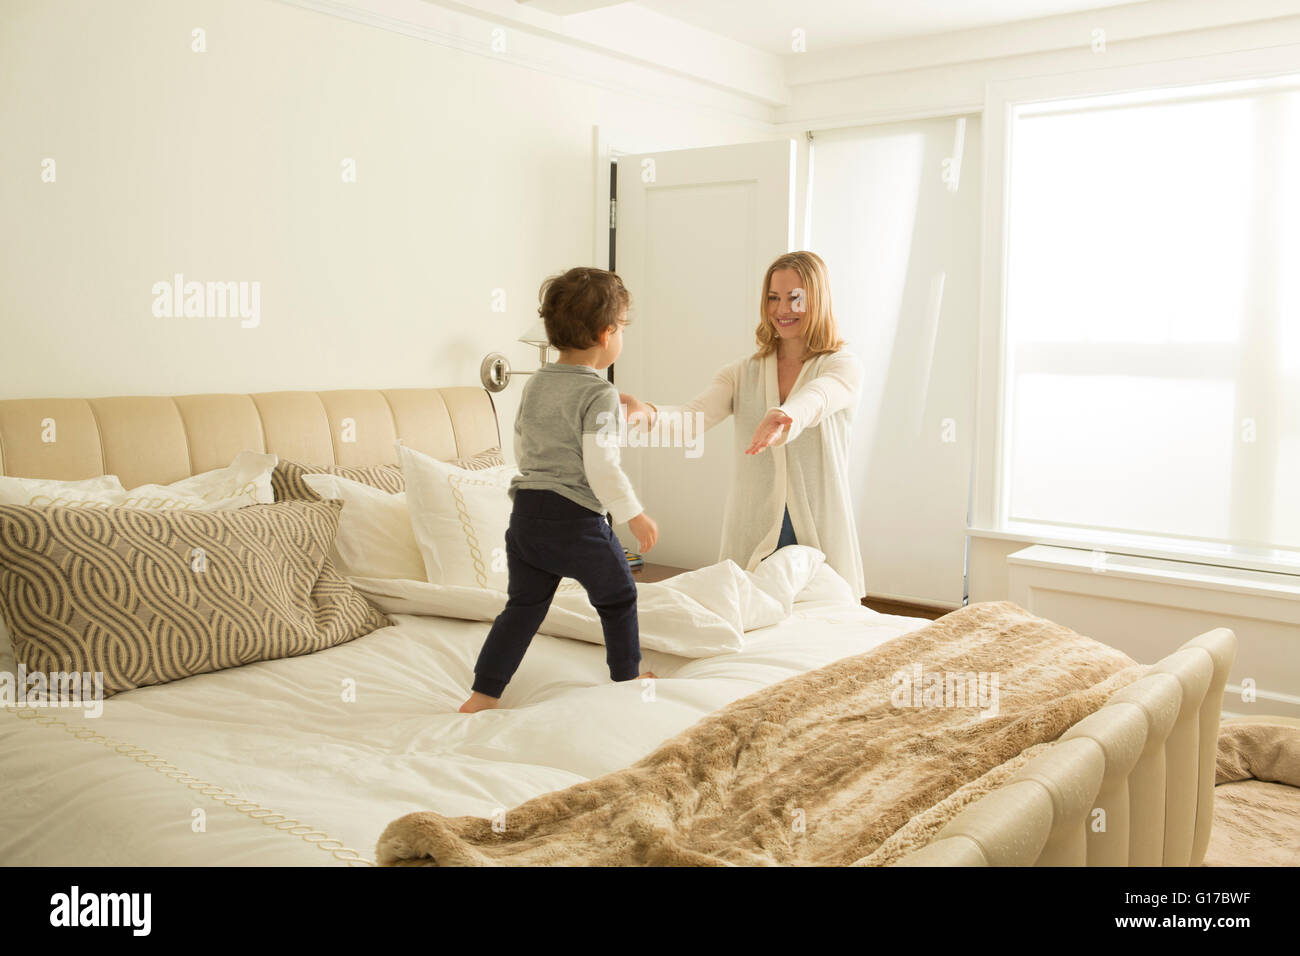 Woman opening arms to toddler son on bed - Stock Image